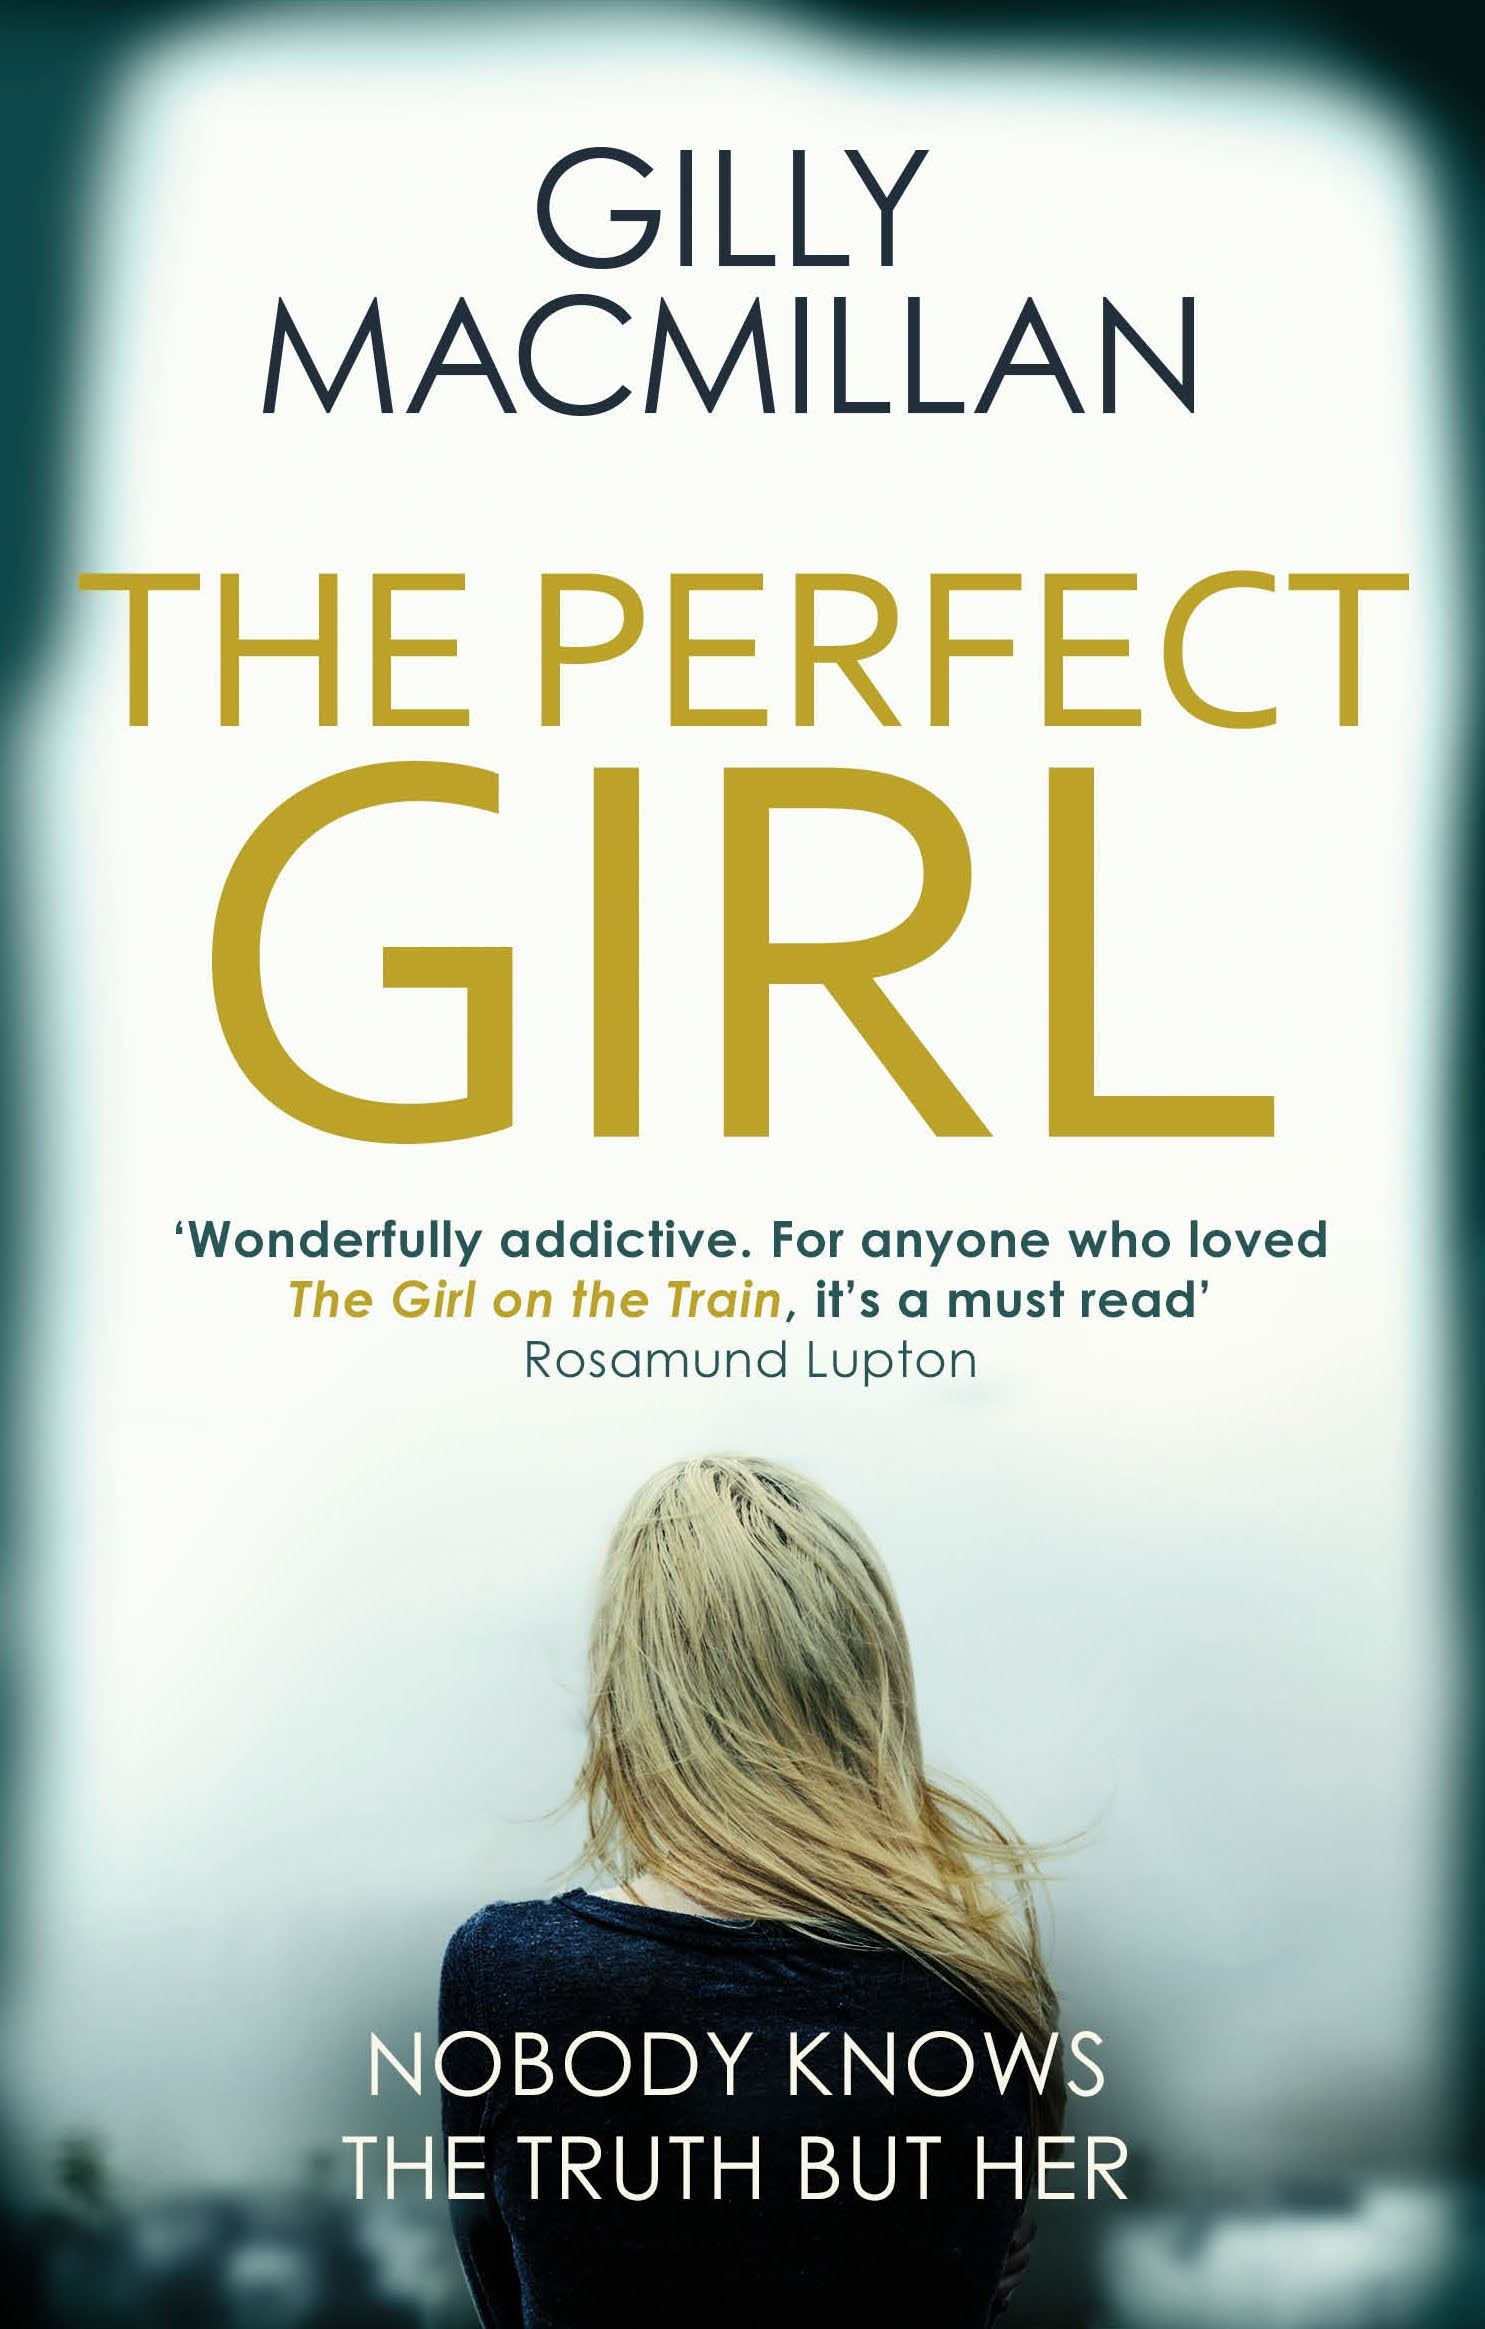 Libros De Macmillan Gilly Macmillan The Perfect Girl Awordfromjojo Mystery